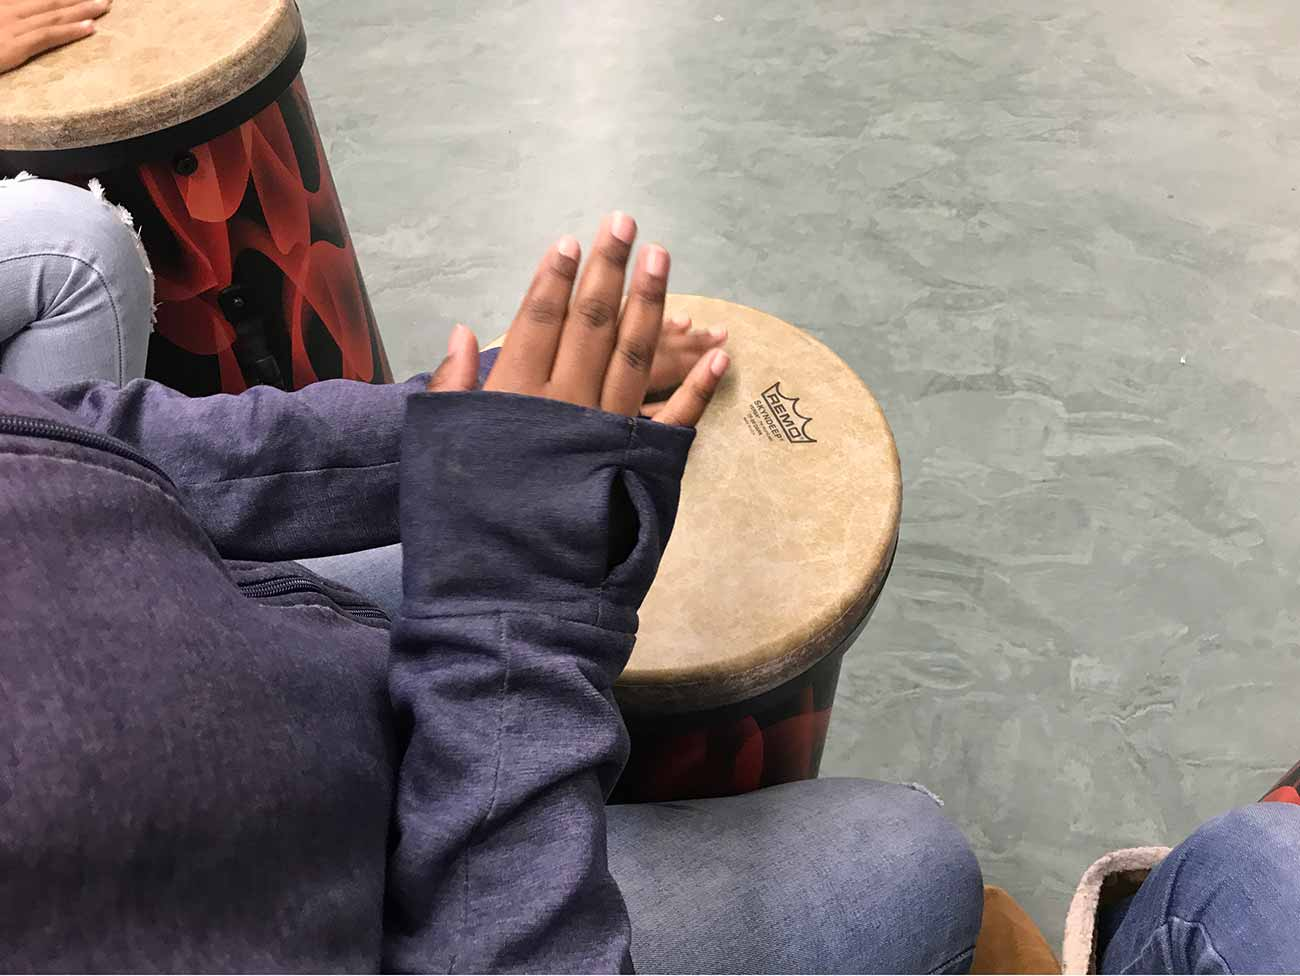 A child's hand on a small drum.